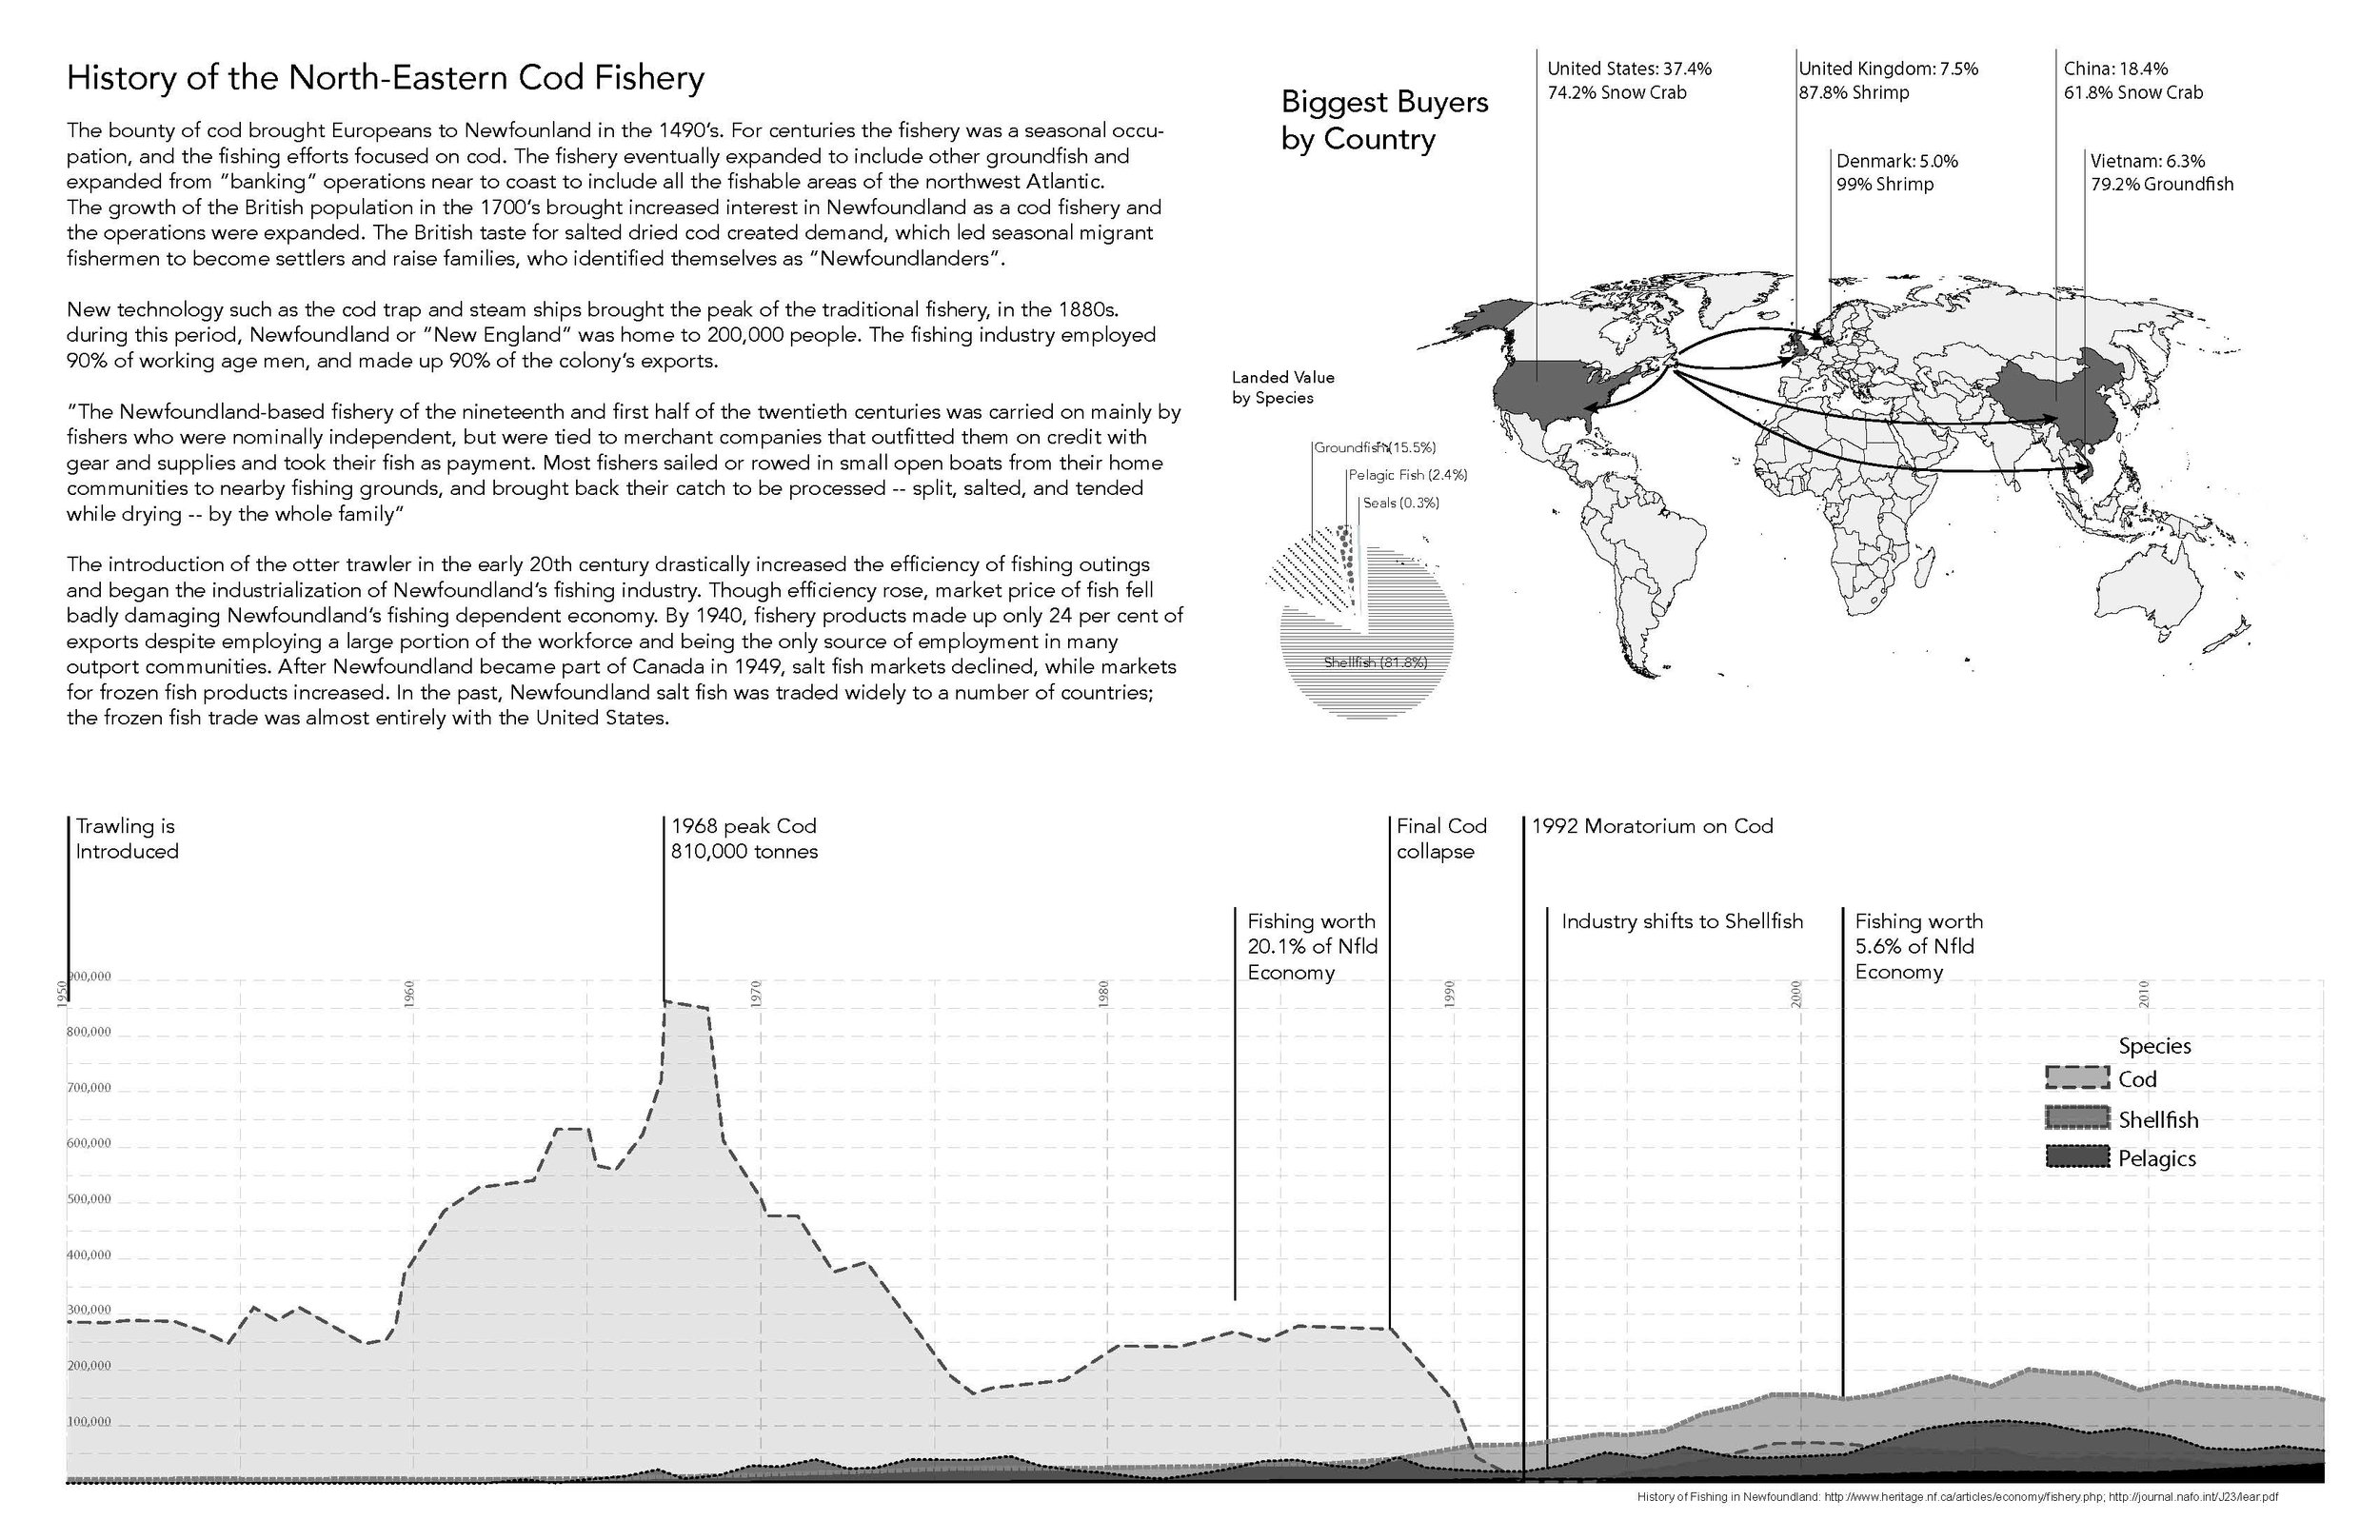 An overview of catching and export trends. The cod populations crashed in 1991, which caused an increase in aquaculture rearing.